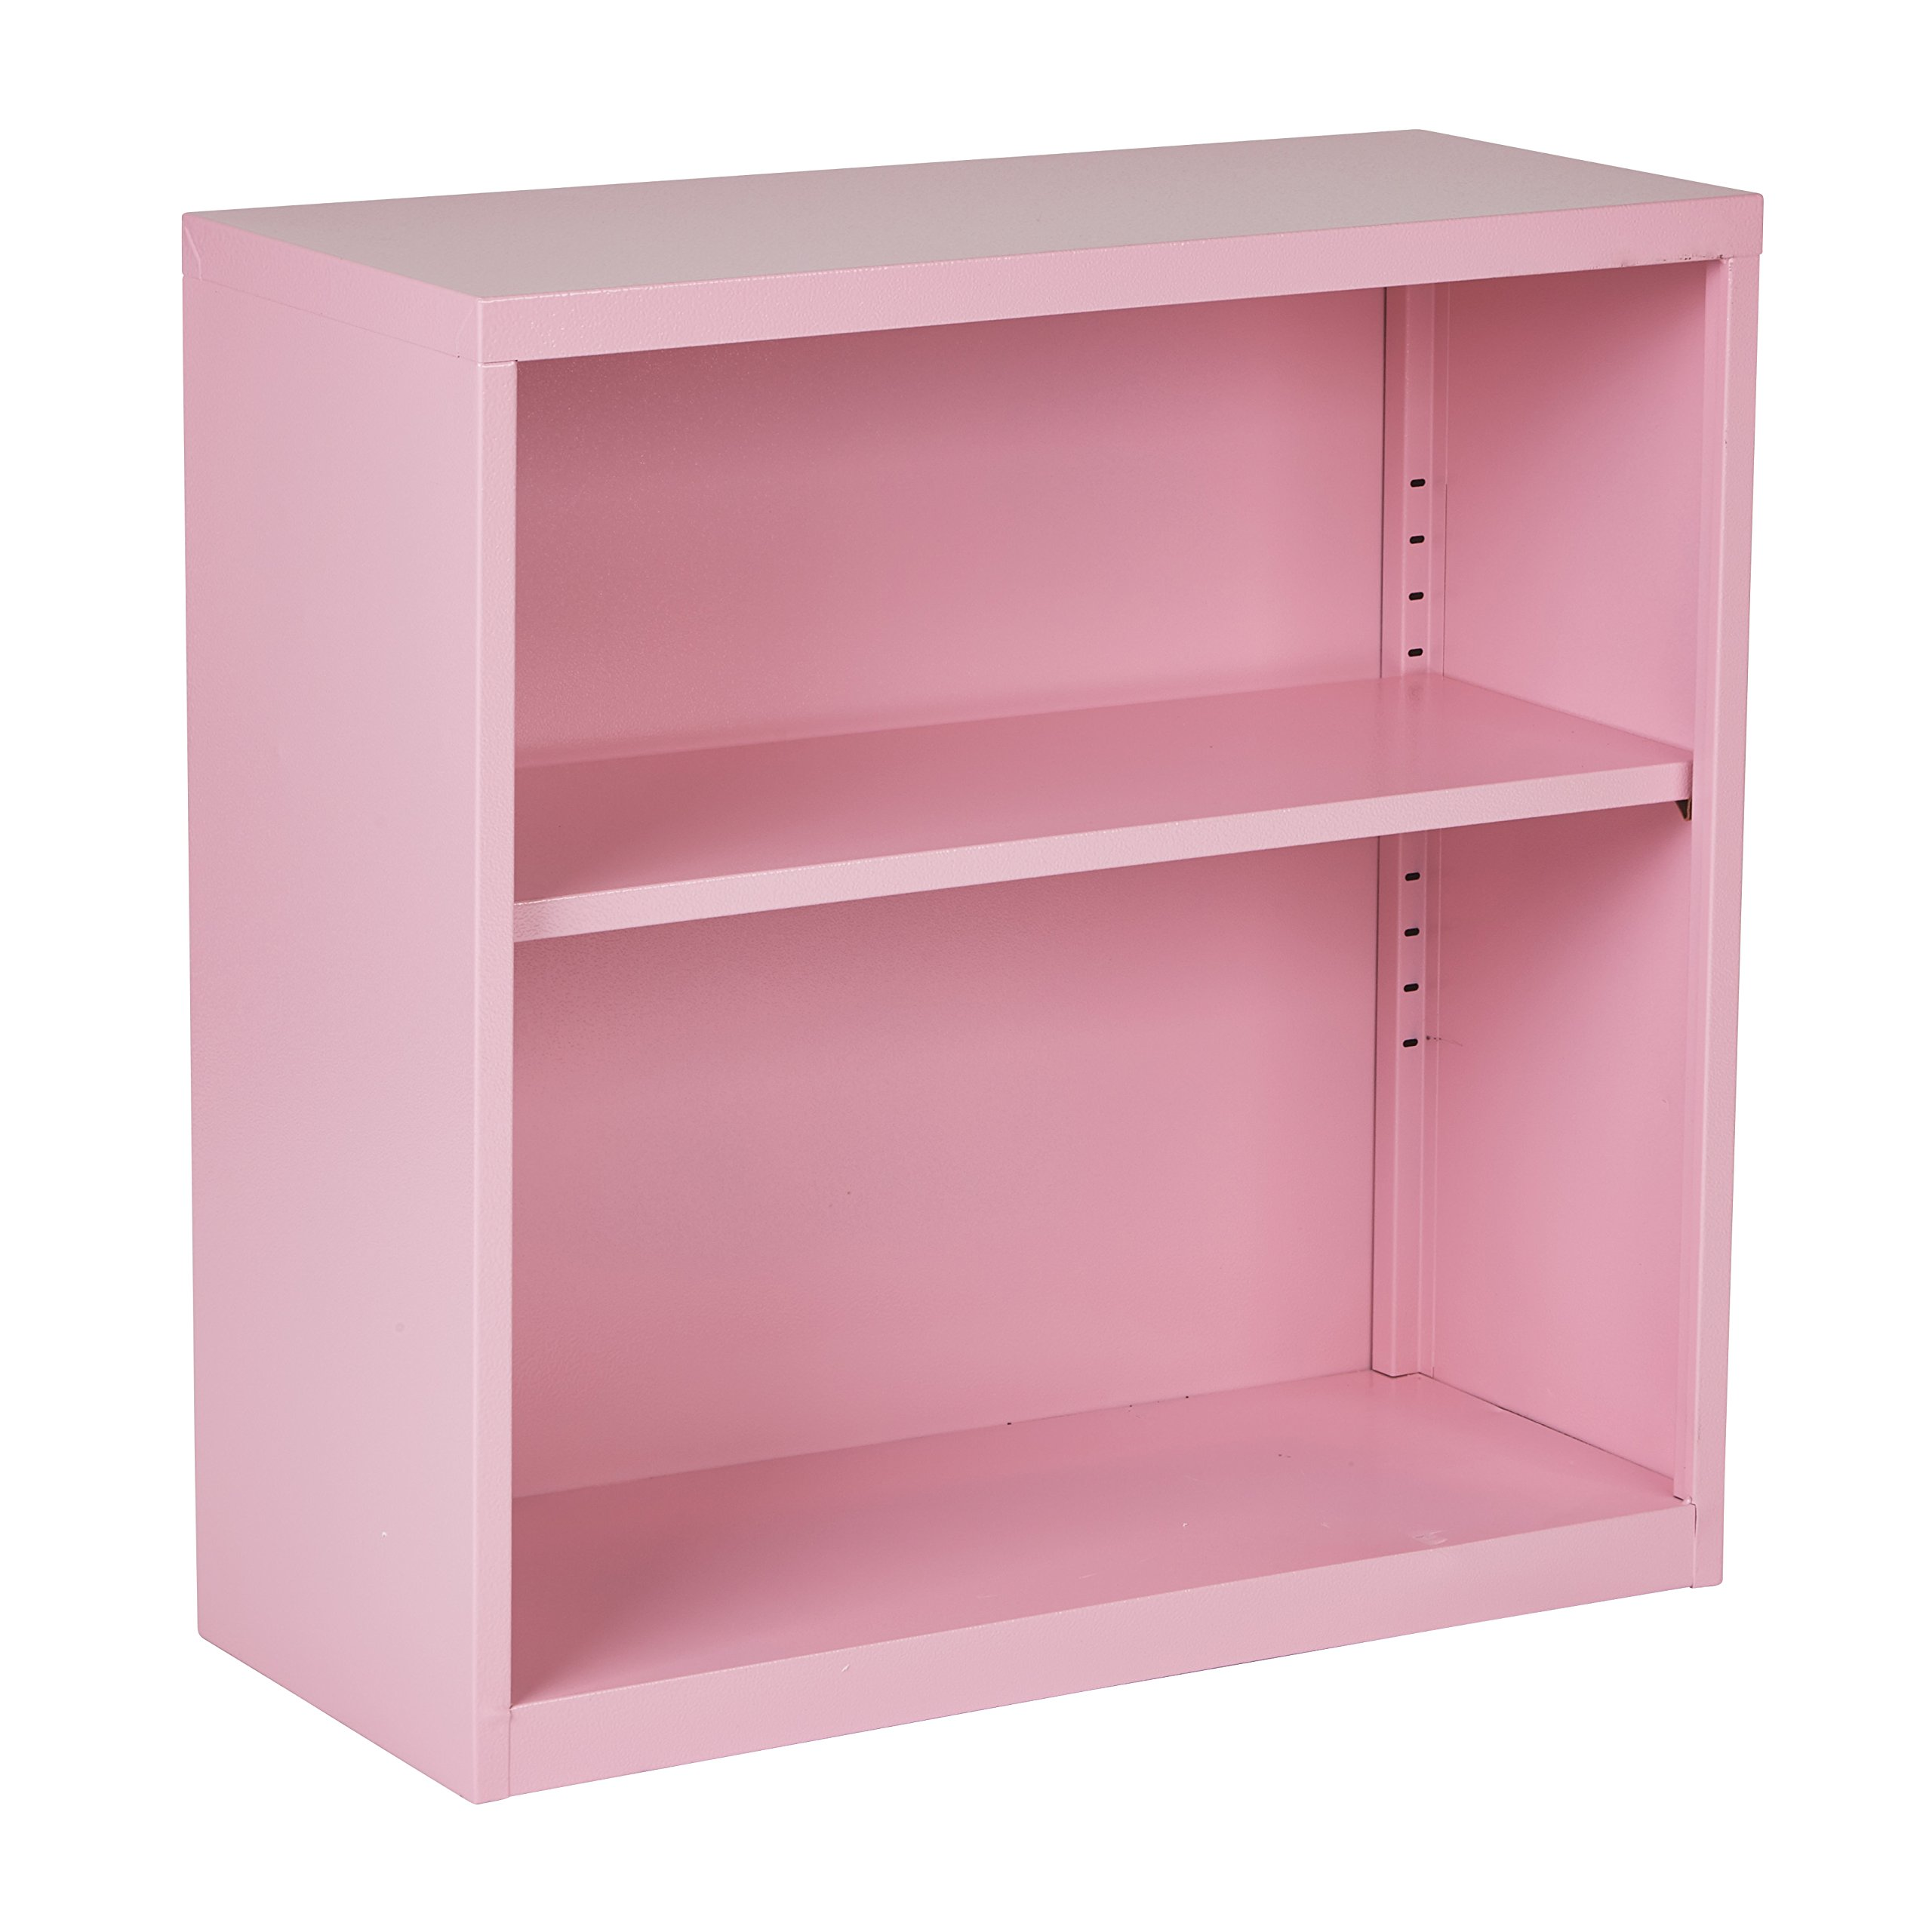 Office Star Metal Bookcase with 1 Adjustable Shelf, Pink Finish